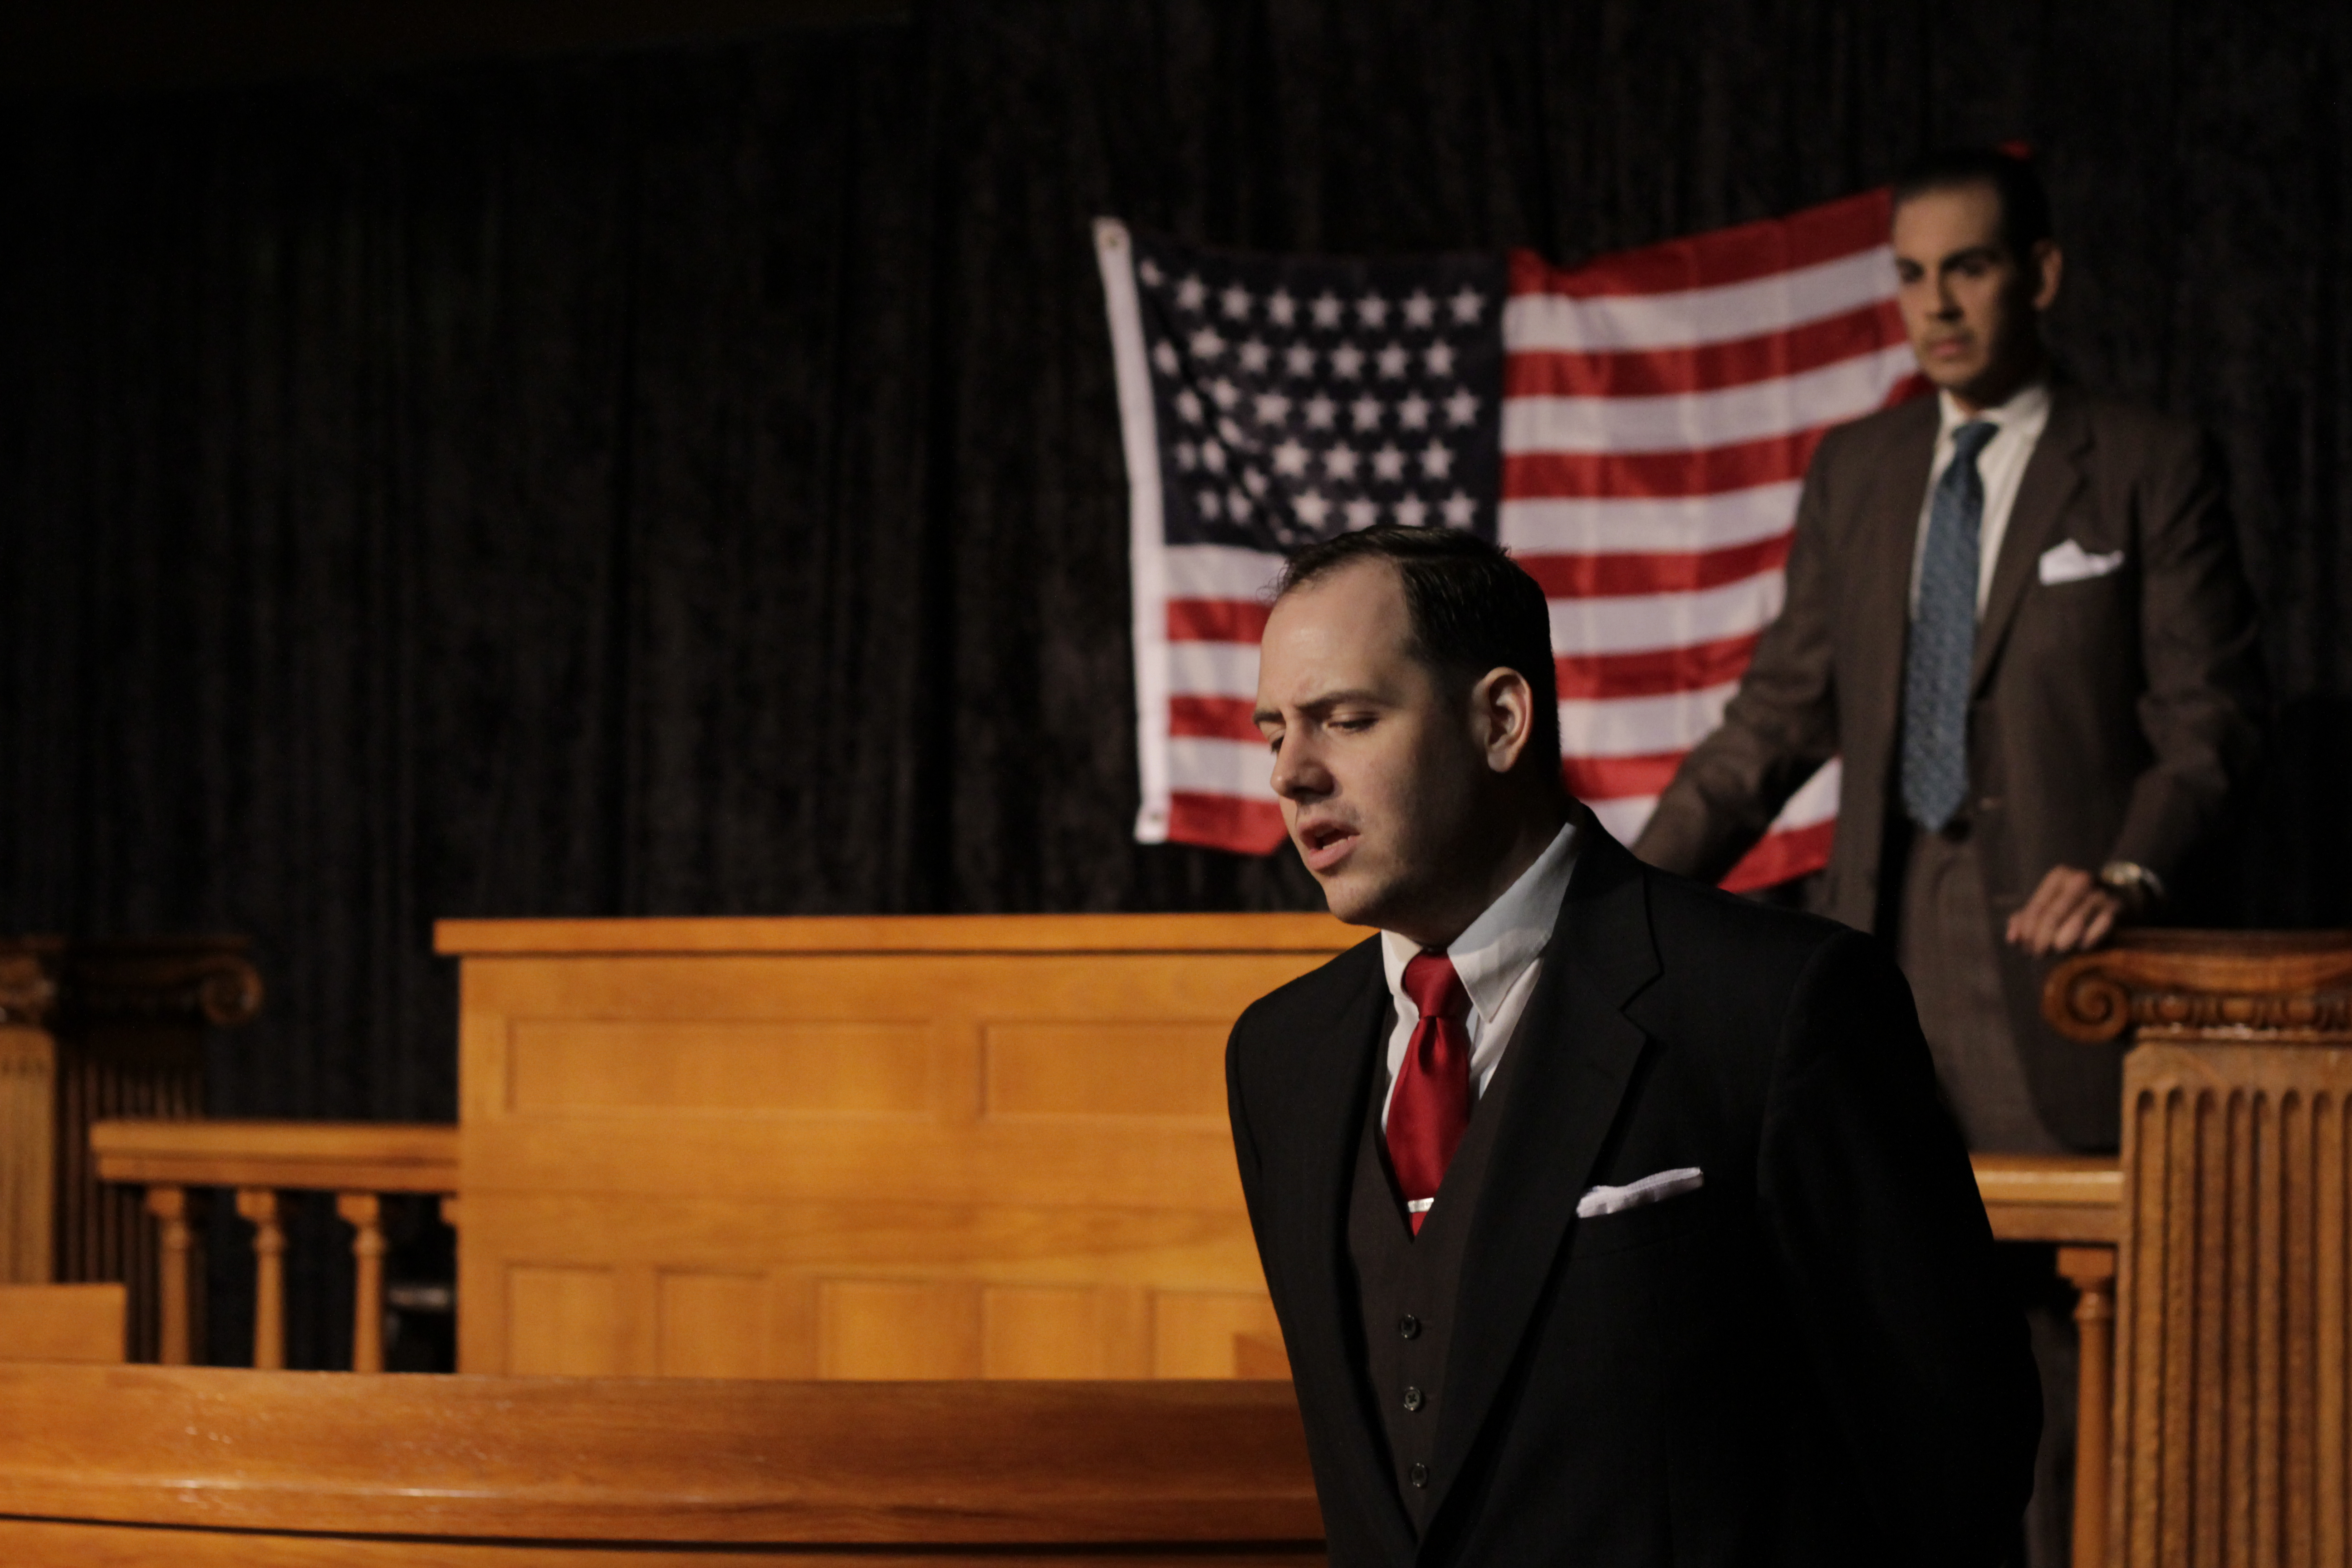 BWW Review: YOU CAN'T DO THAT DAN MOODY Wins Its Case at the Georgetown Palace Theatre